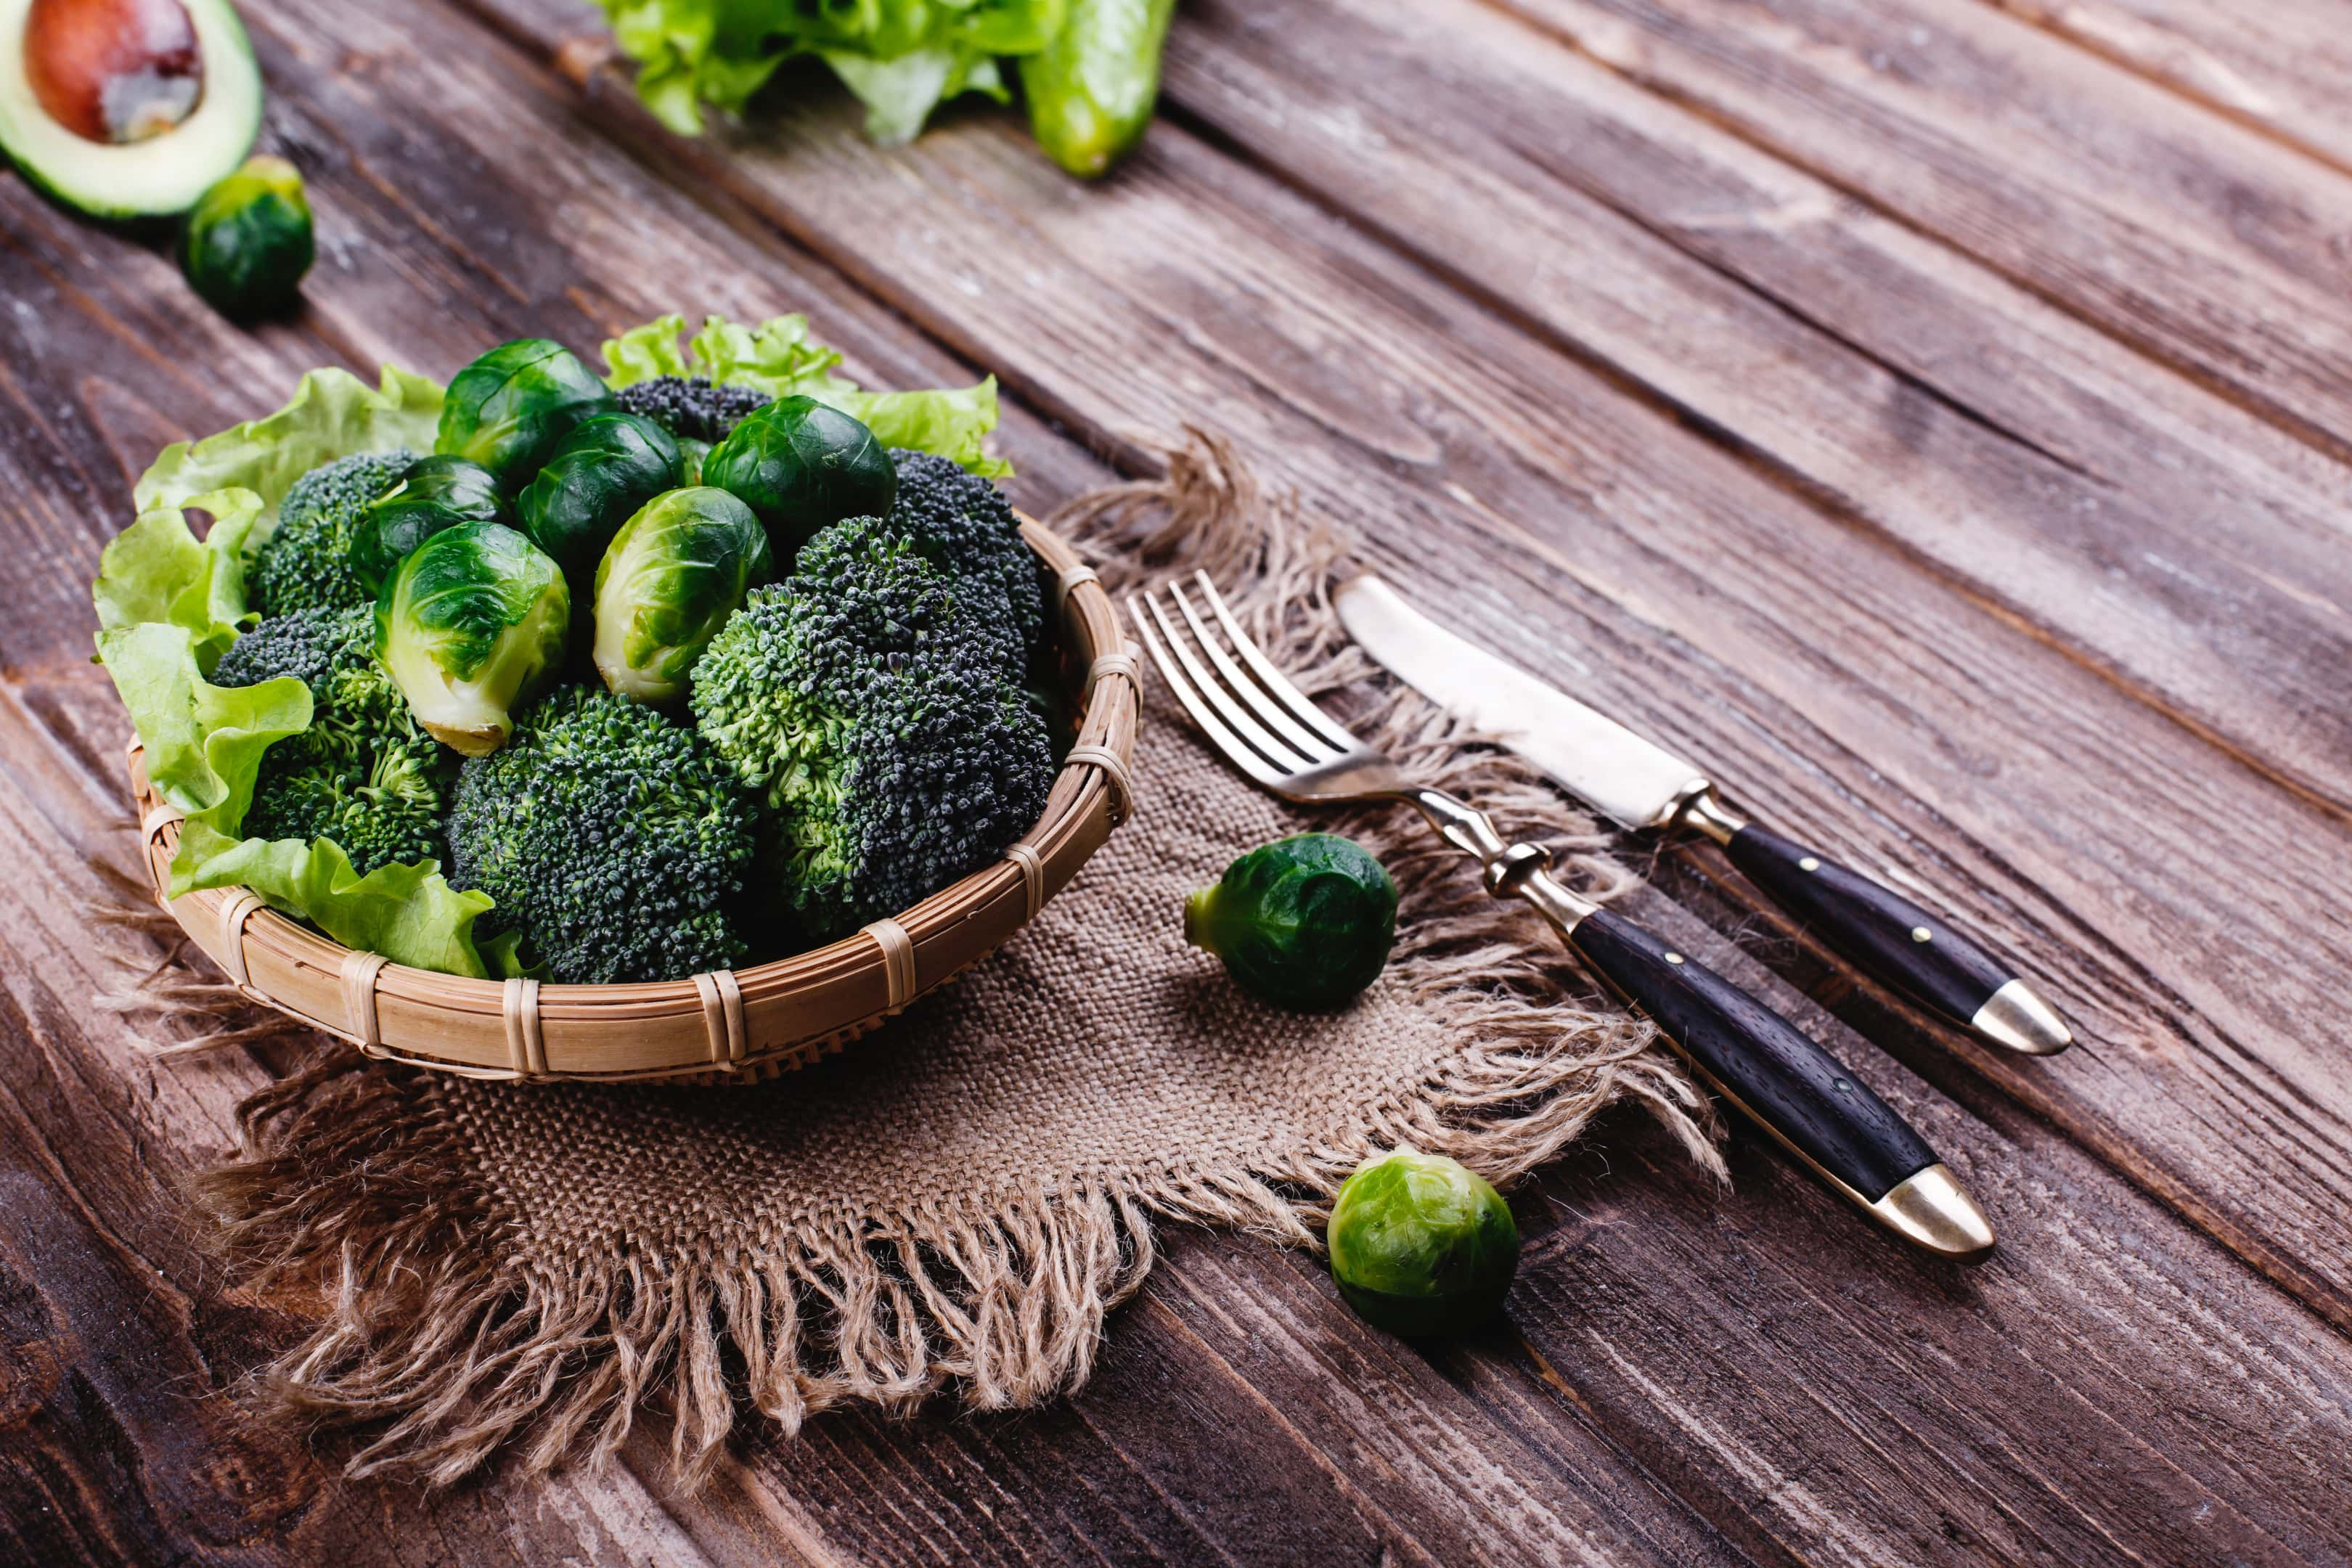 Wooden bowl with broccoli and brussel sprou